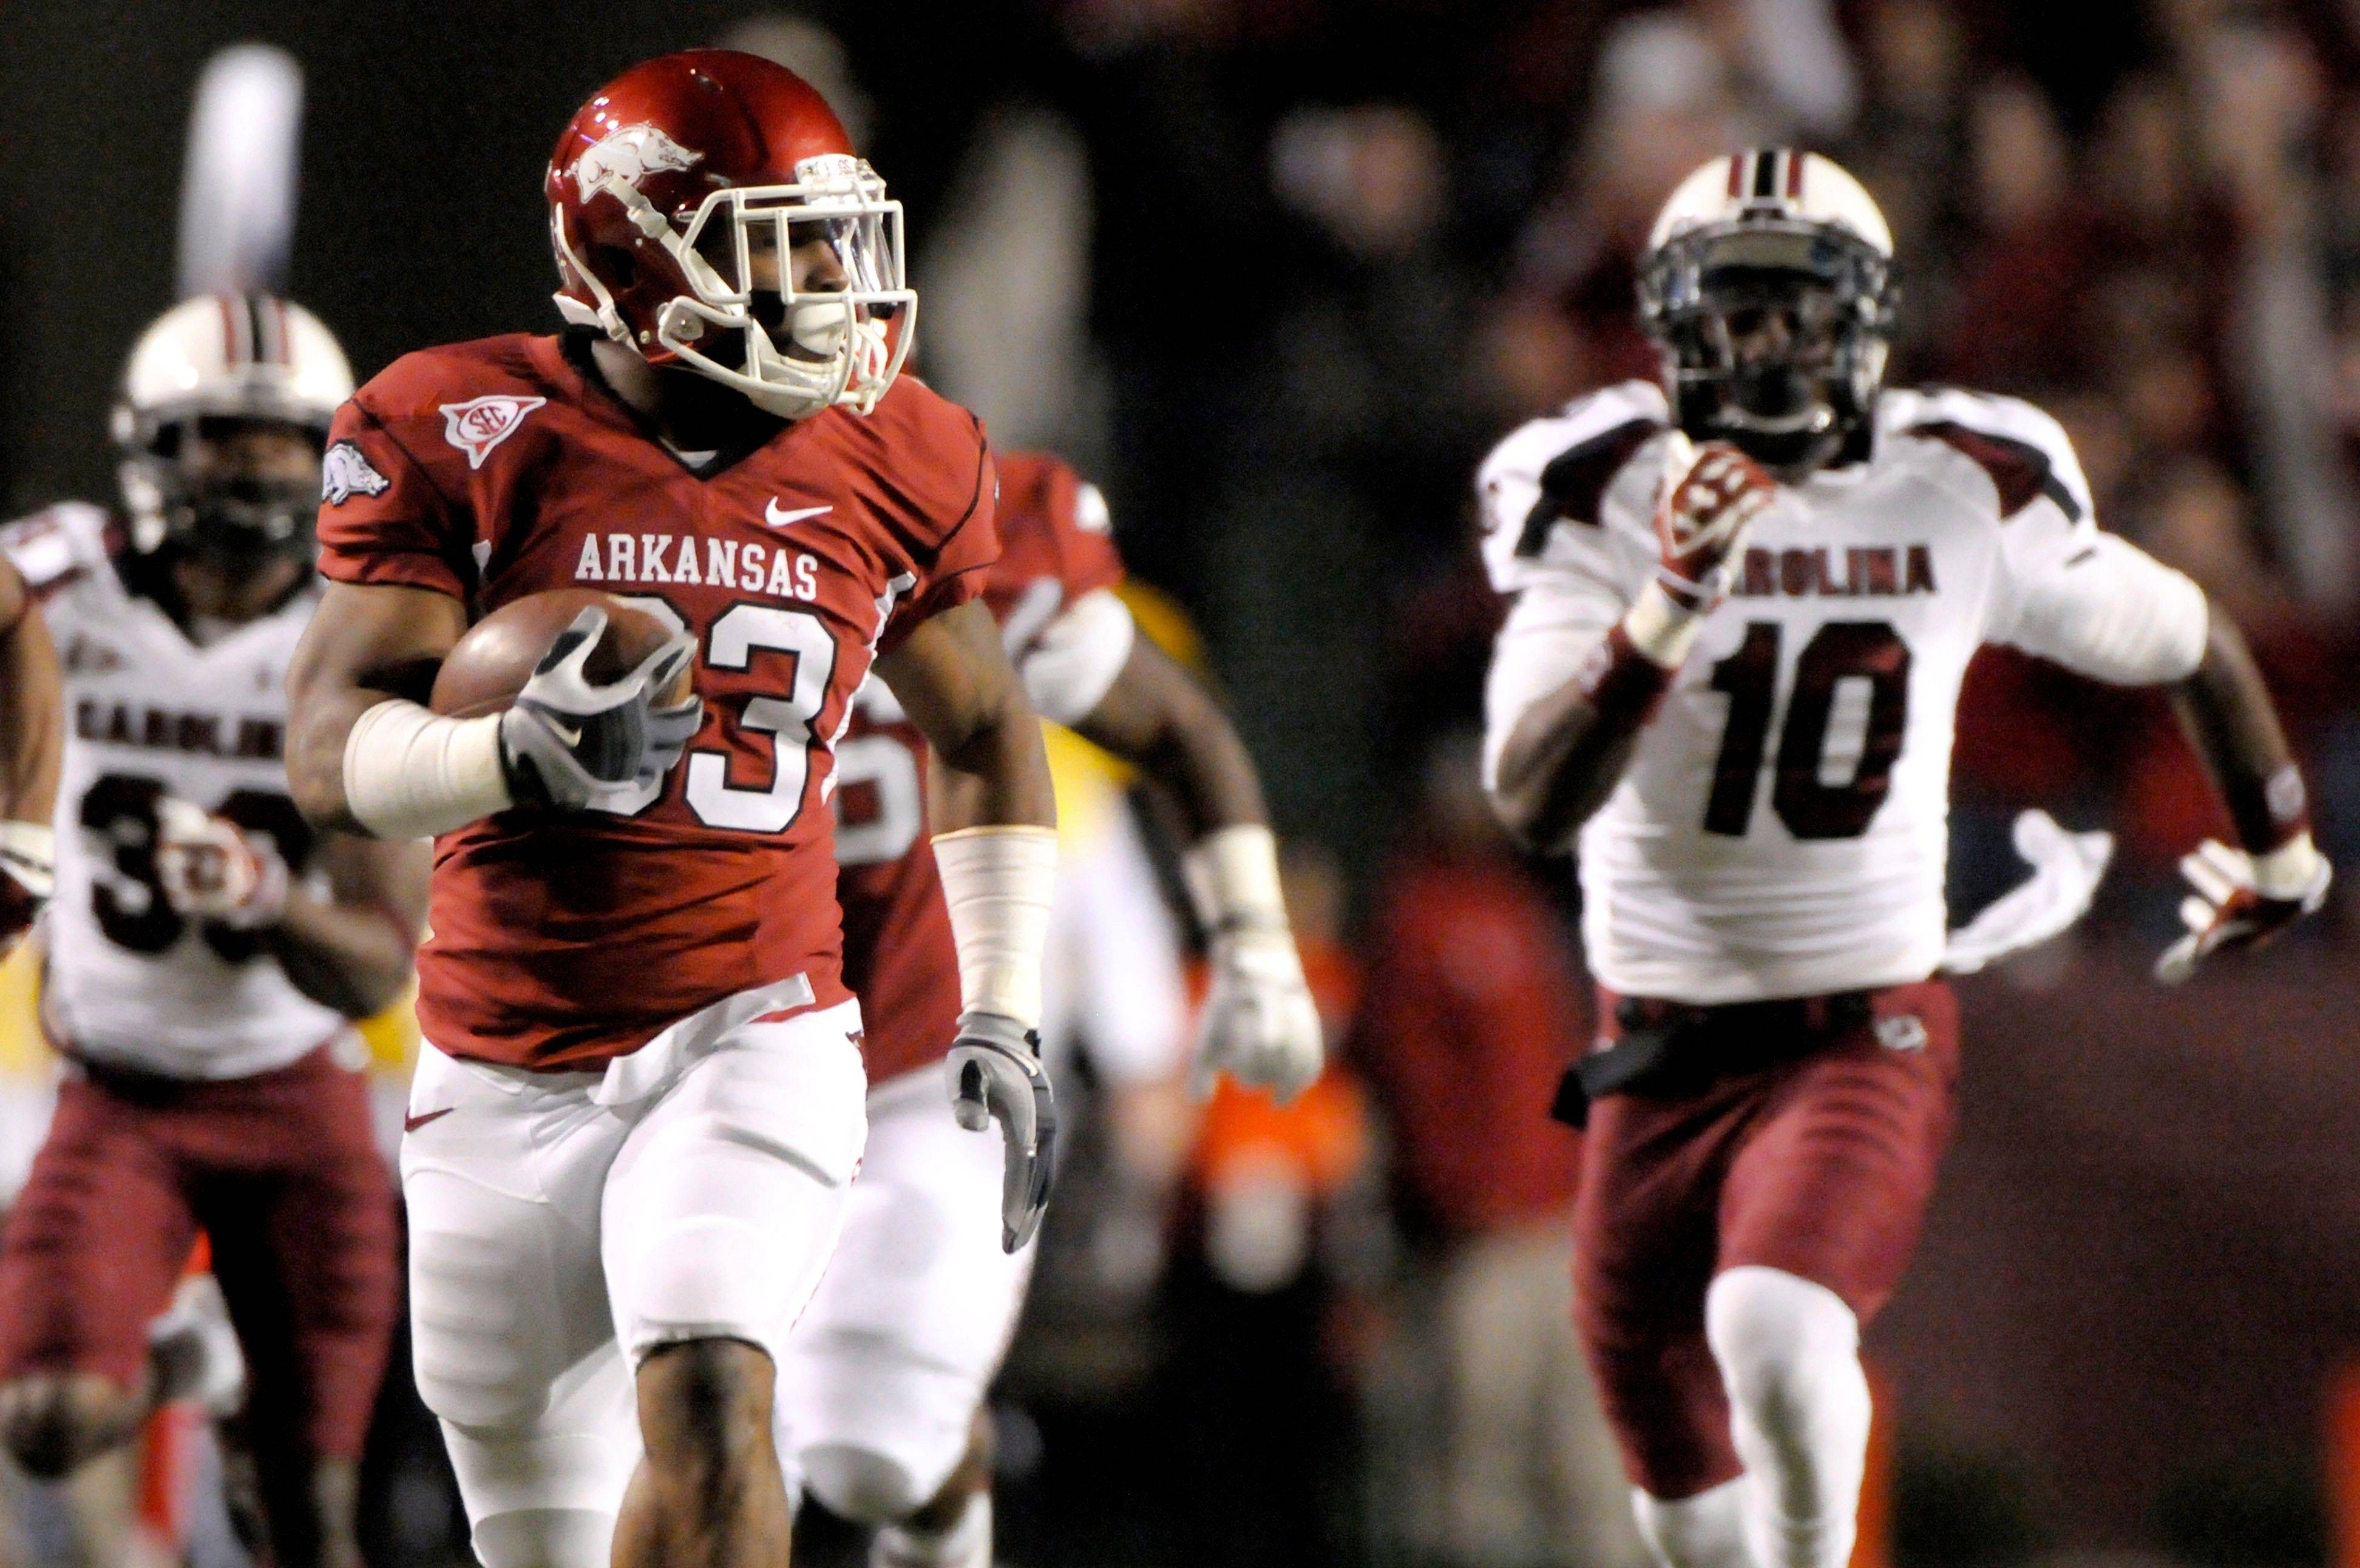 Arkansas' Dennis Johnson runs for the end zone to score on a kickoff return Saturday in Fayetteville, Ark.